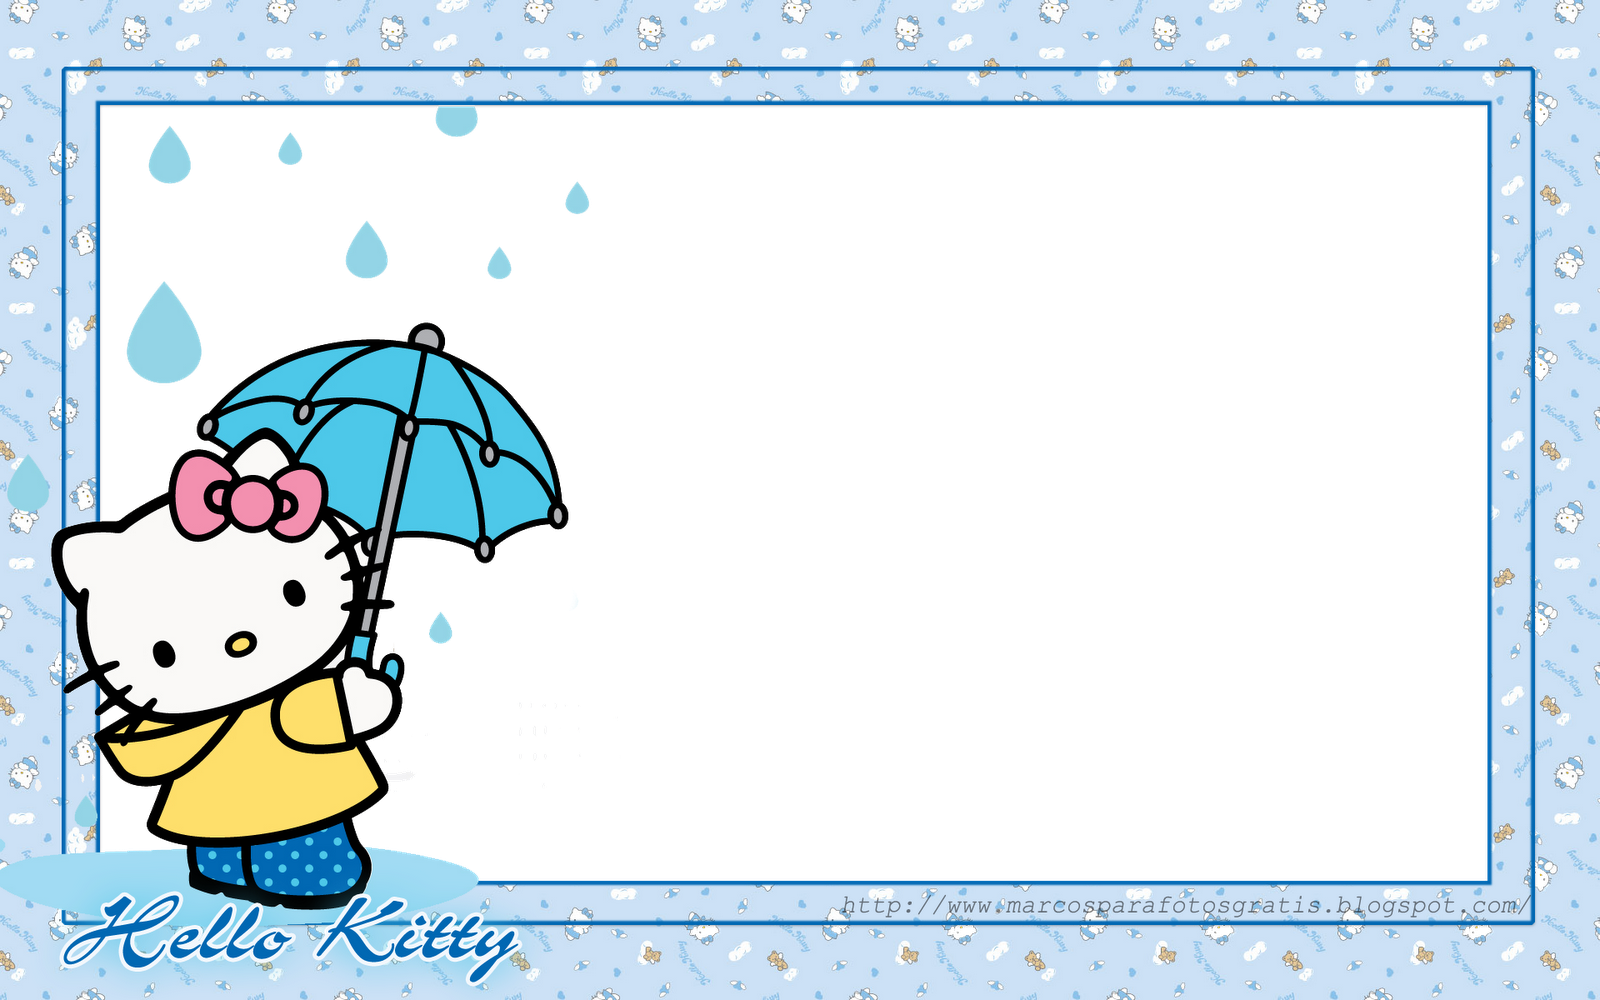 MARCOS DE HELLO KITTY, PNG Y WALLPAPER DE HELLO KITTY